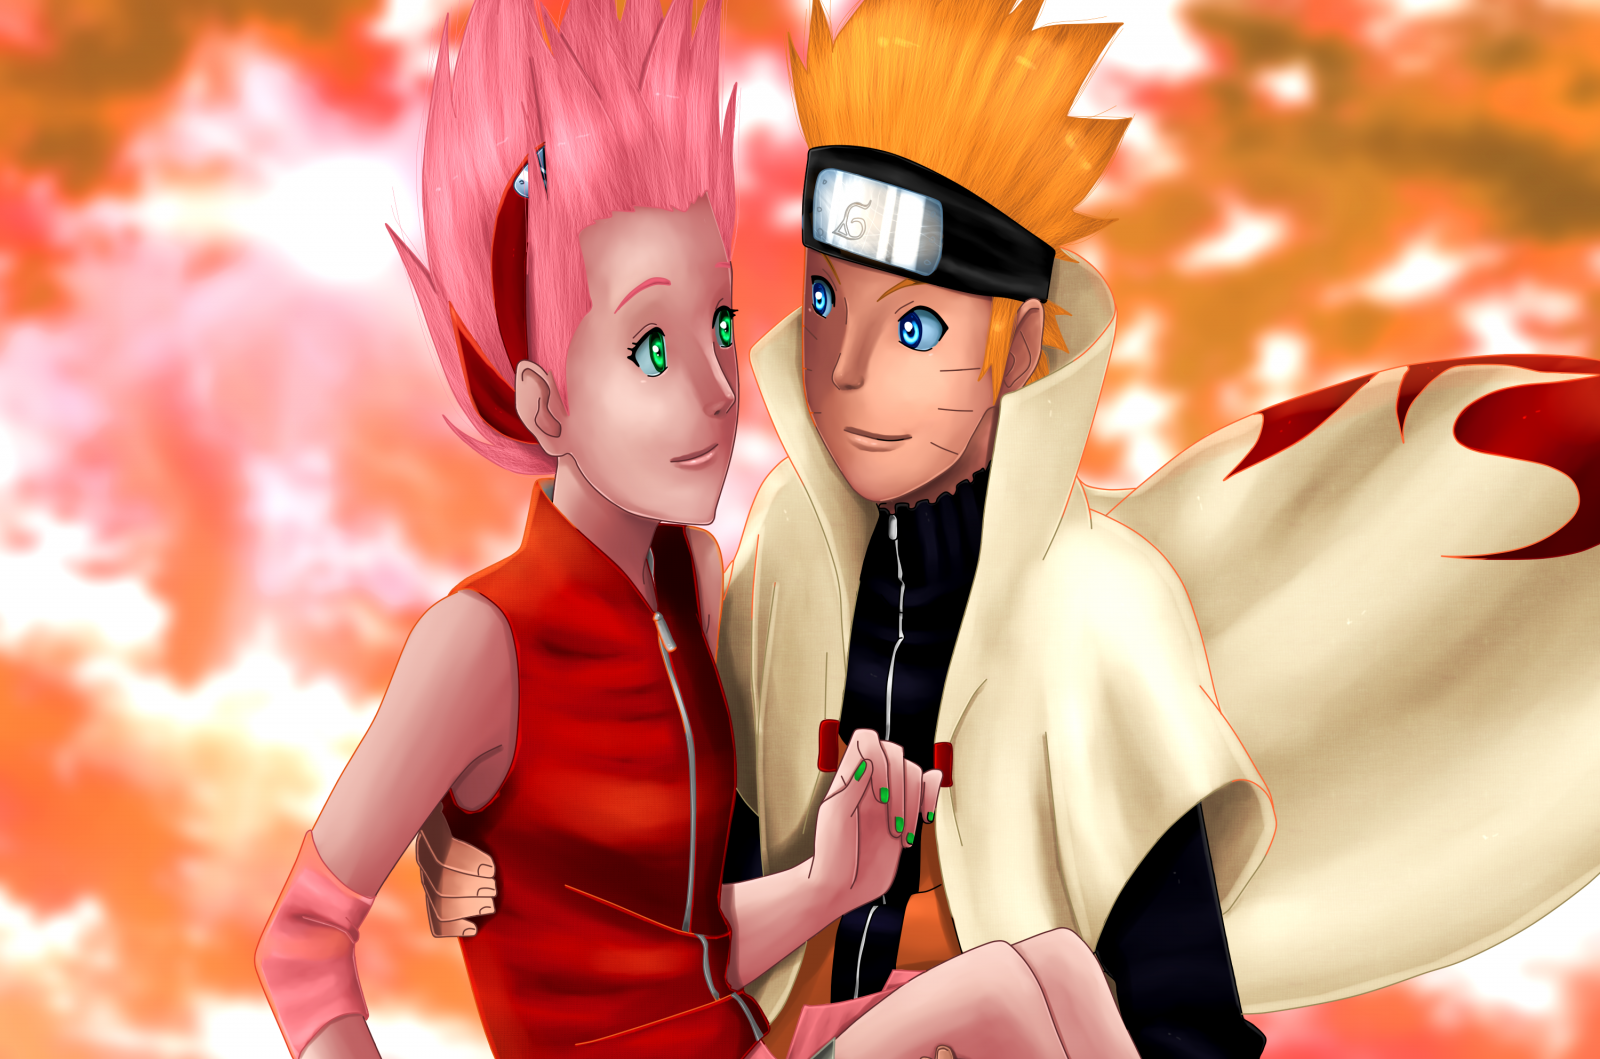 Road to NaruSaku